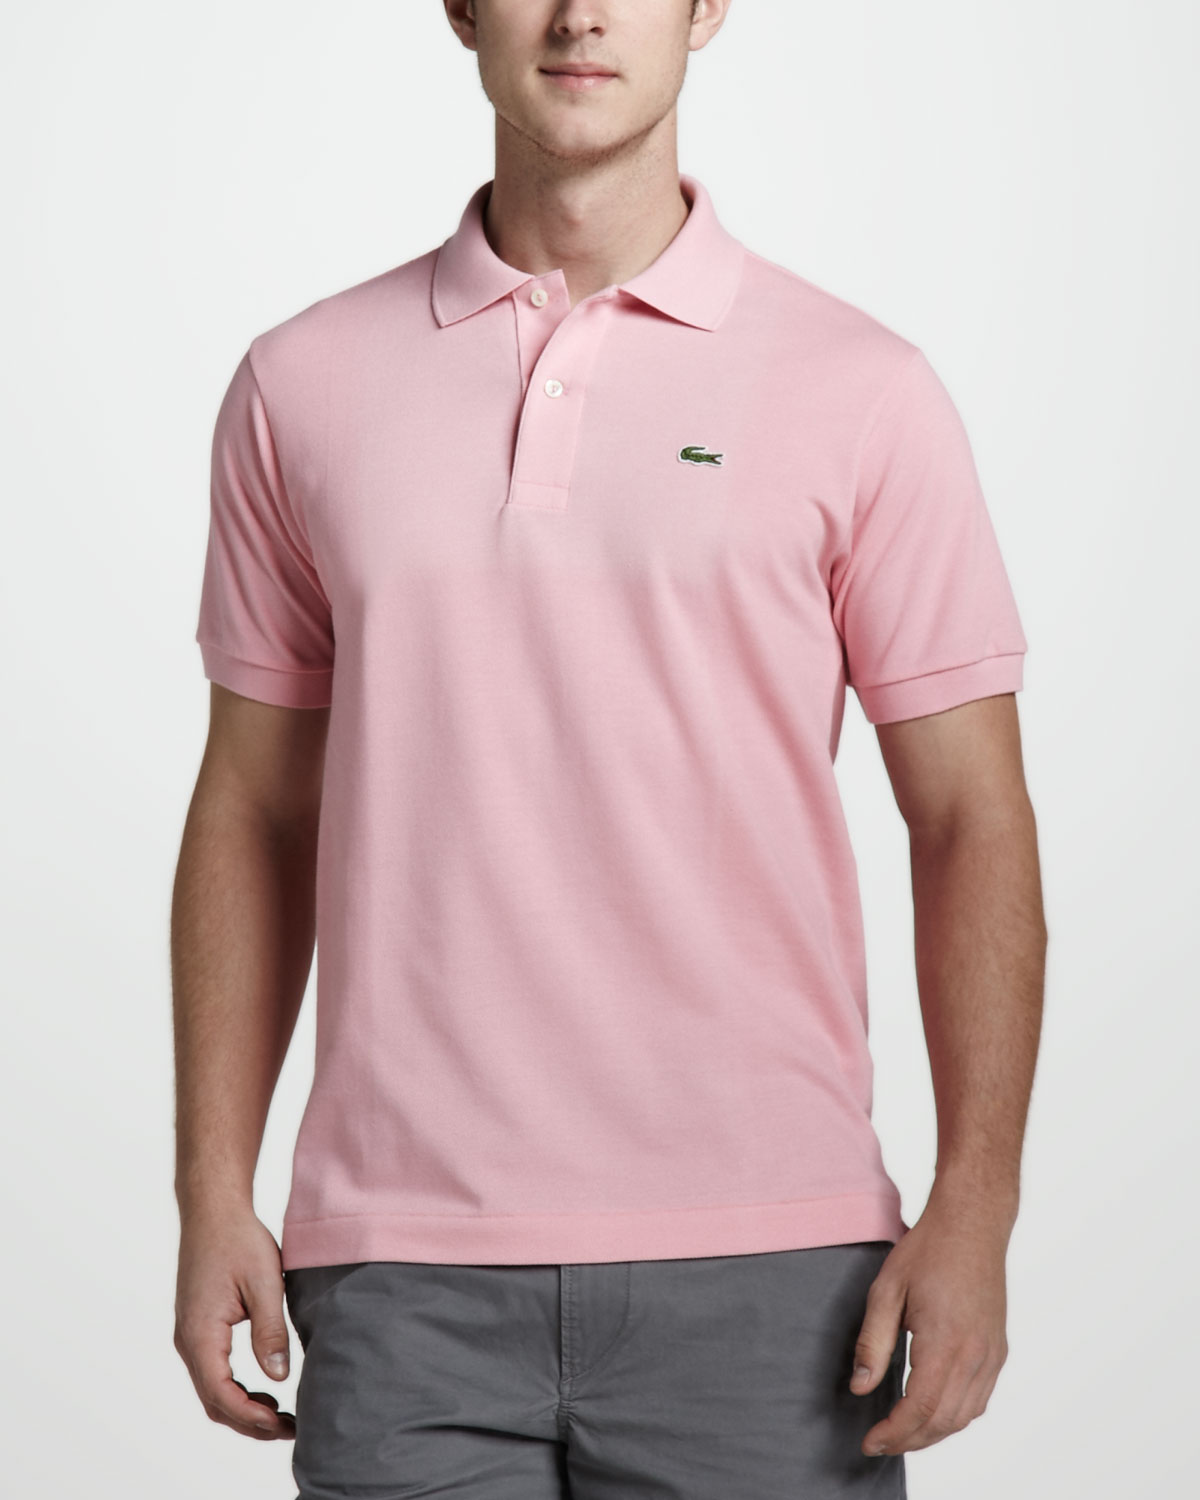 925a37e804758 Lyst - Lacoste Classic Pique Polo in Pink for Men